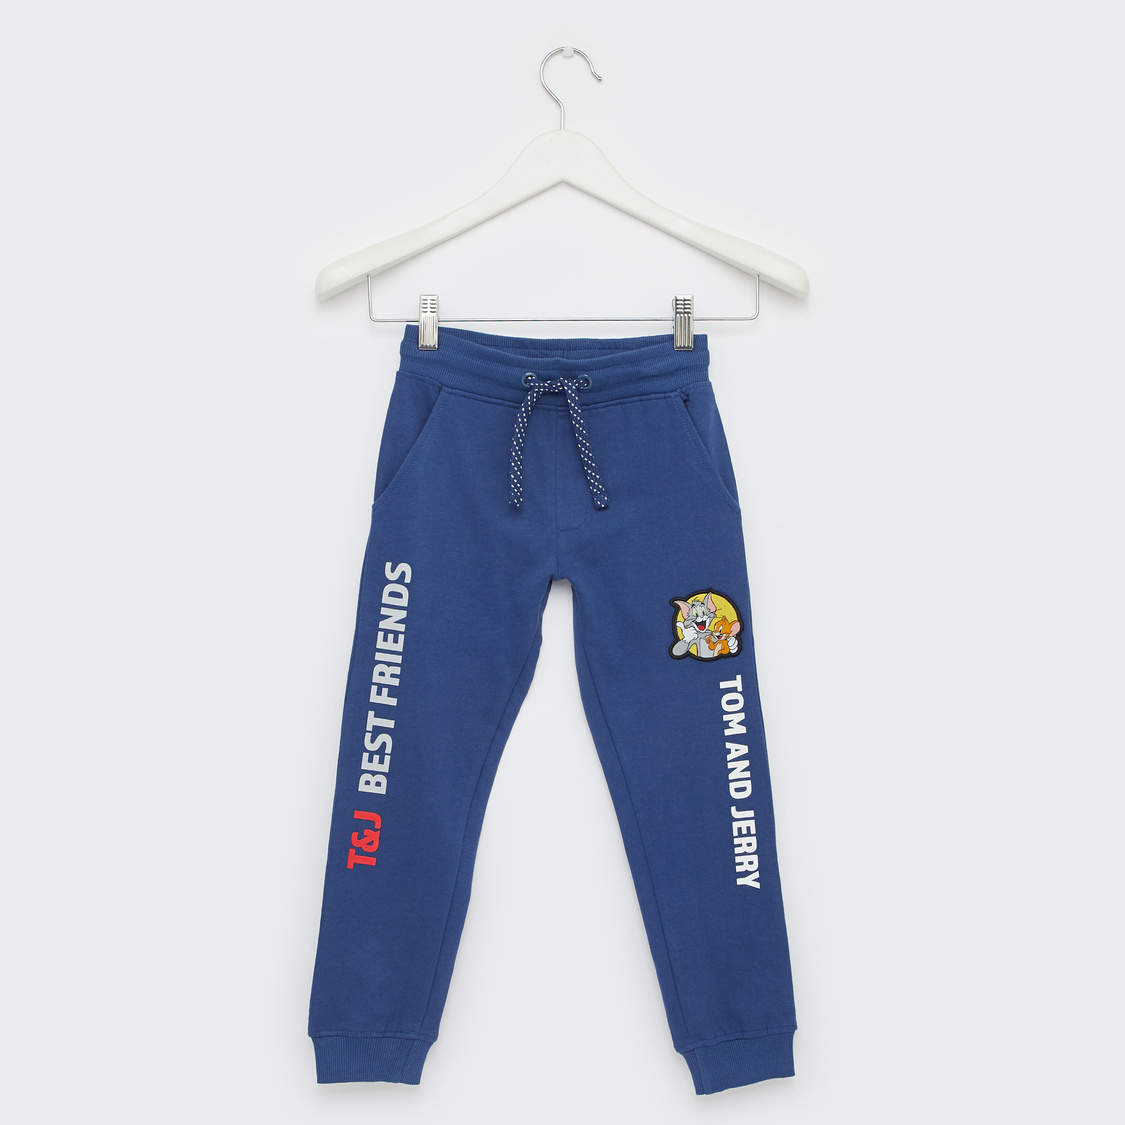 Tom and Jerry Typographic Print Jog Pants with Drawstring Closure